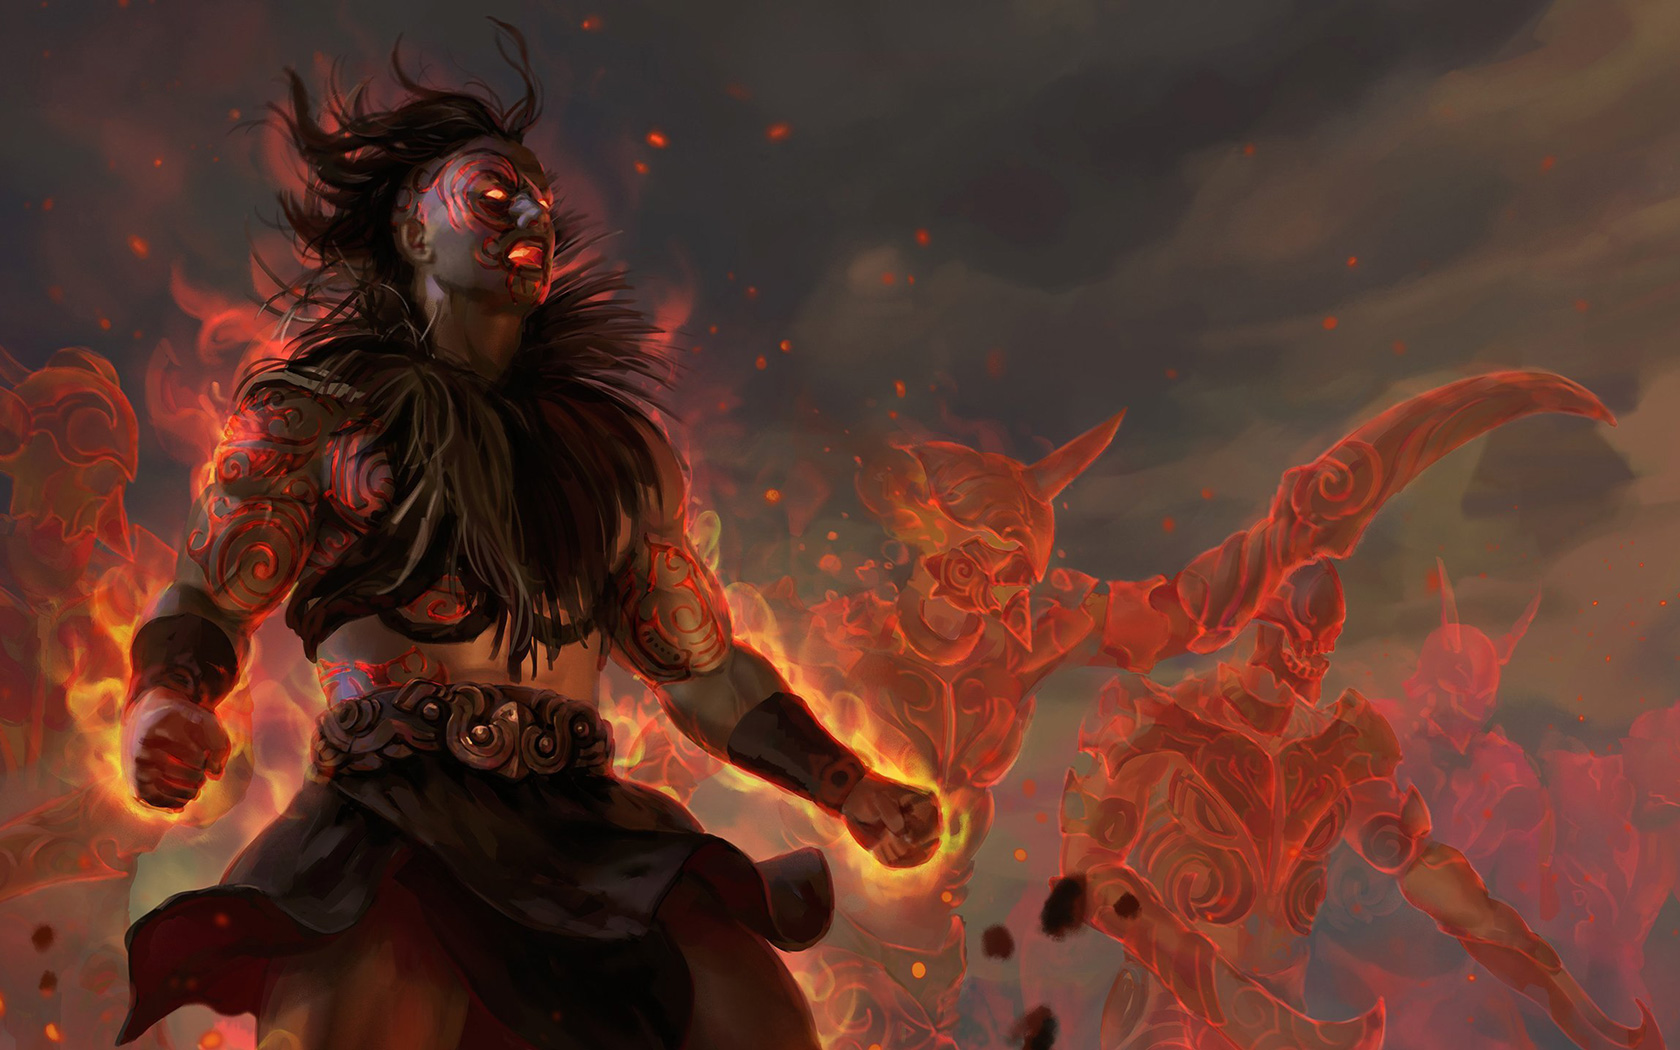 Free Path of Exile 2 Wallpaper in 1680x1050